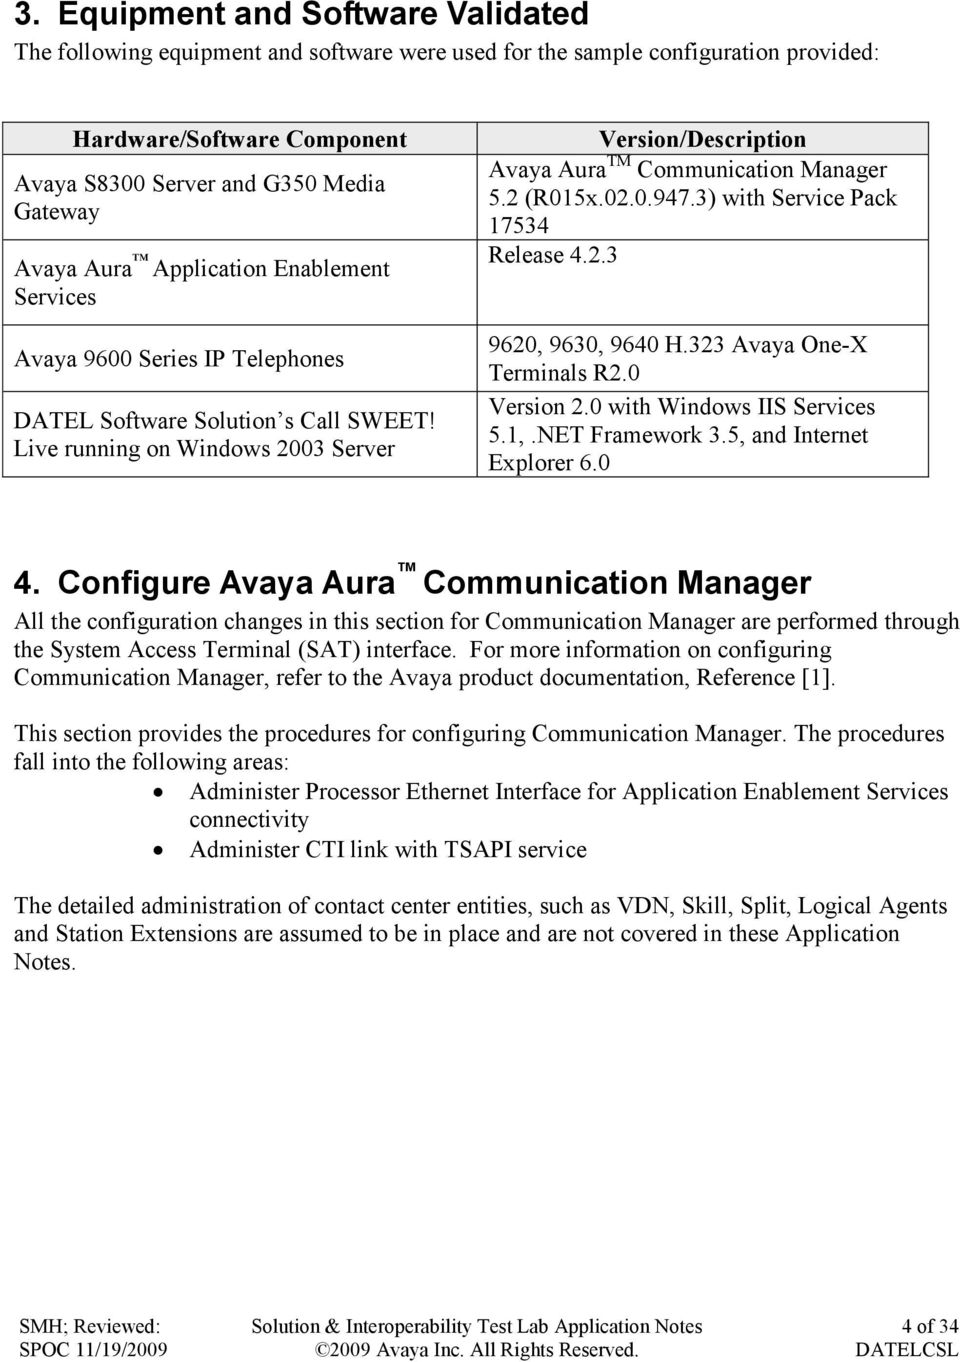 Live running on Windows 2003 Server Version/Description Avaya Aura TM Communication Manager 5.2 (R015x.02.0.947.3) with Service Pack 17534 Release 4.2.3 9620, 9630, 9640 H.